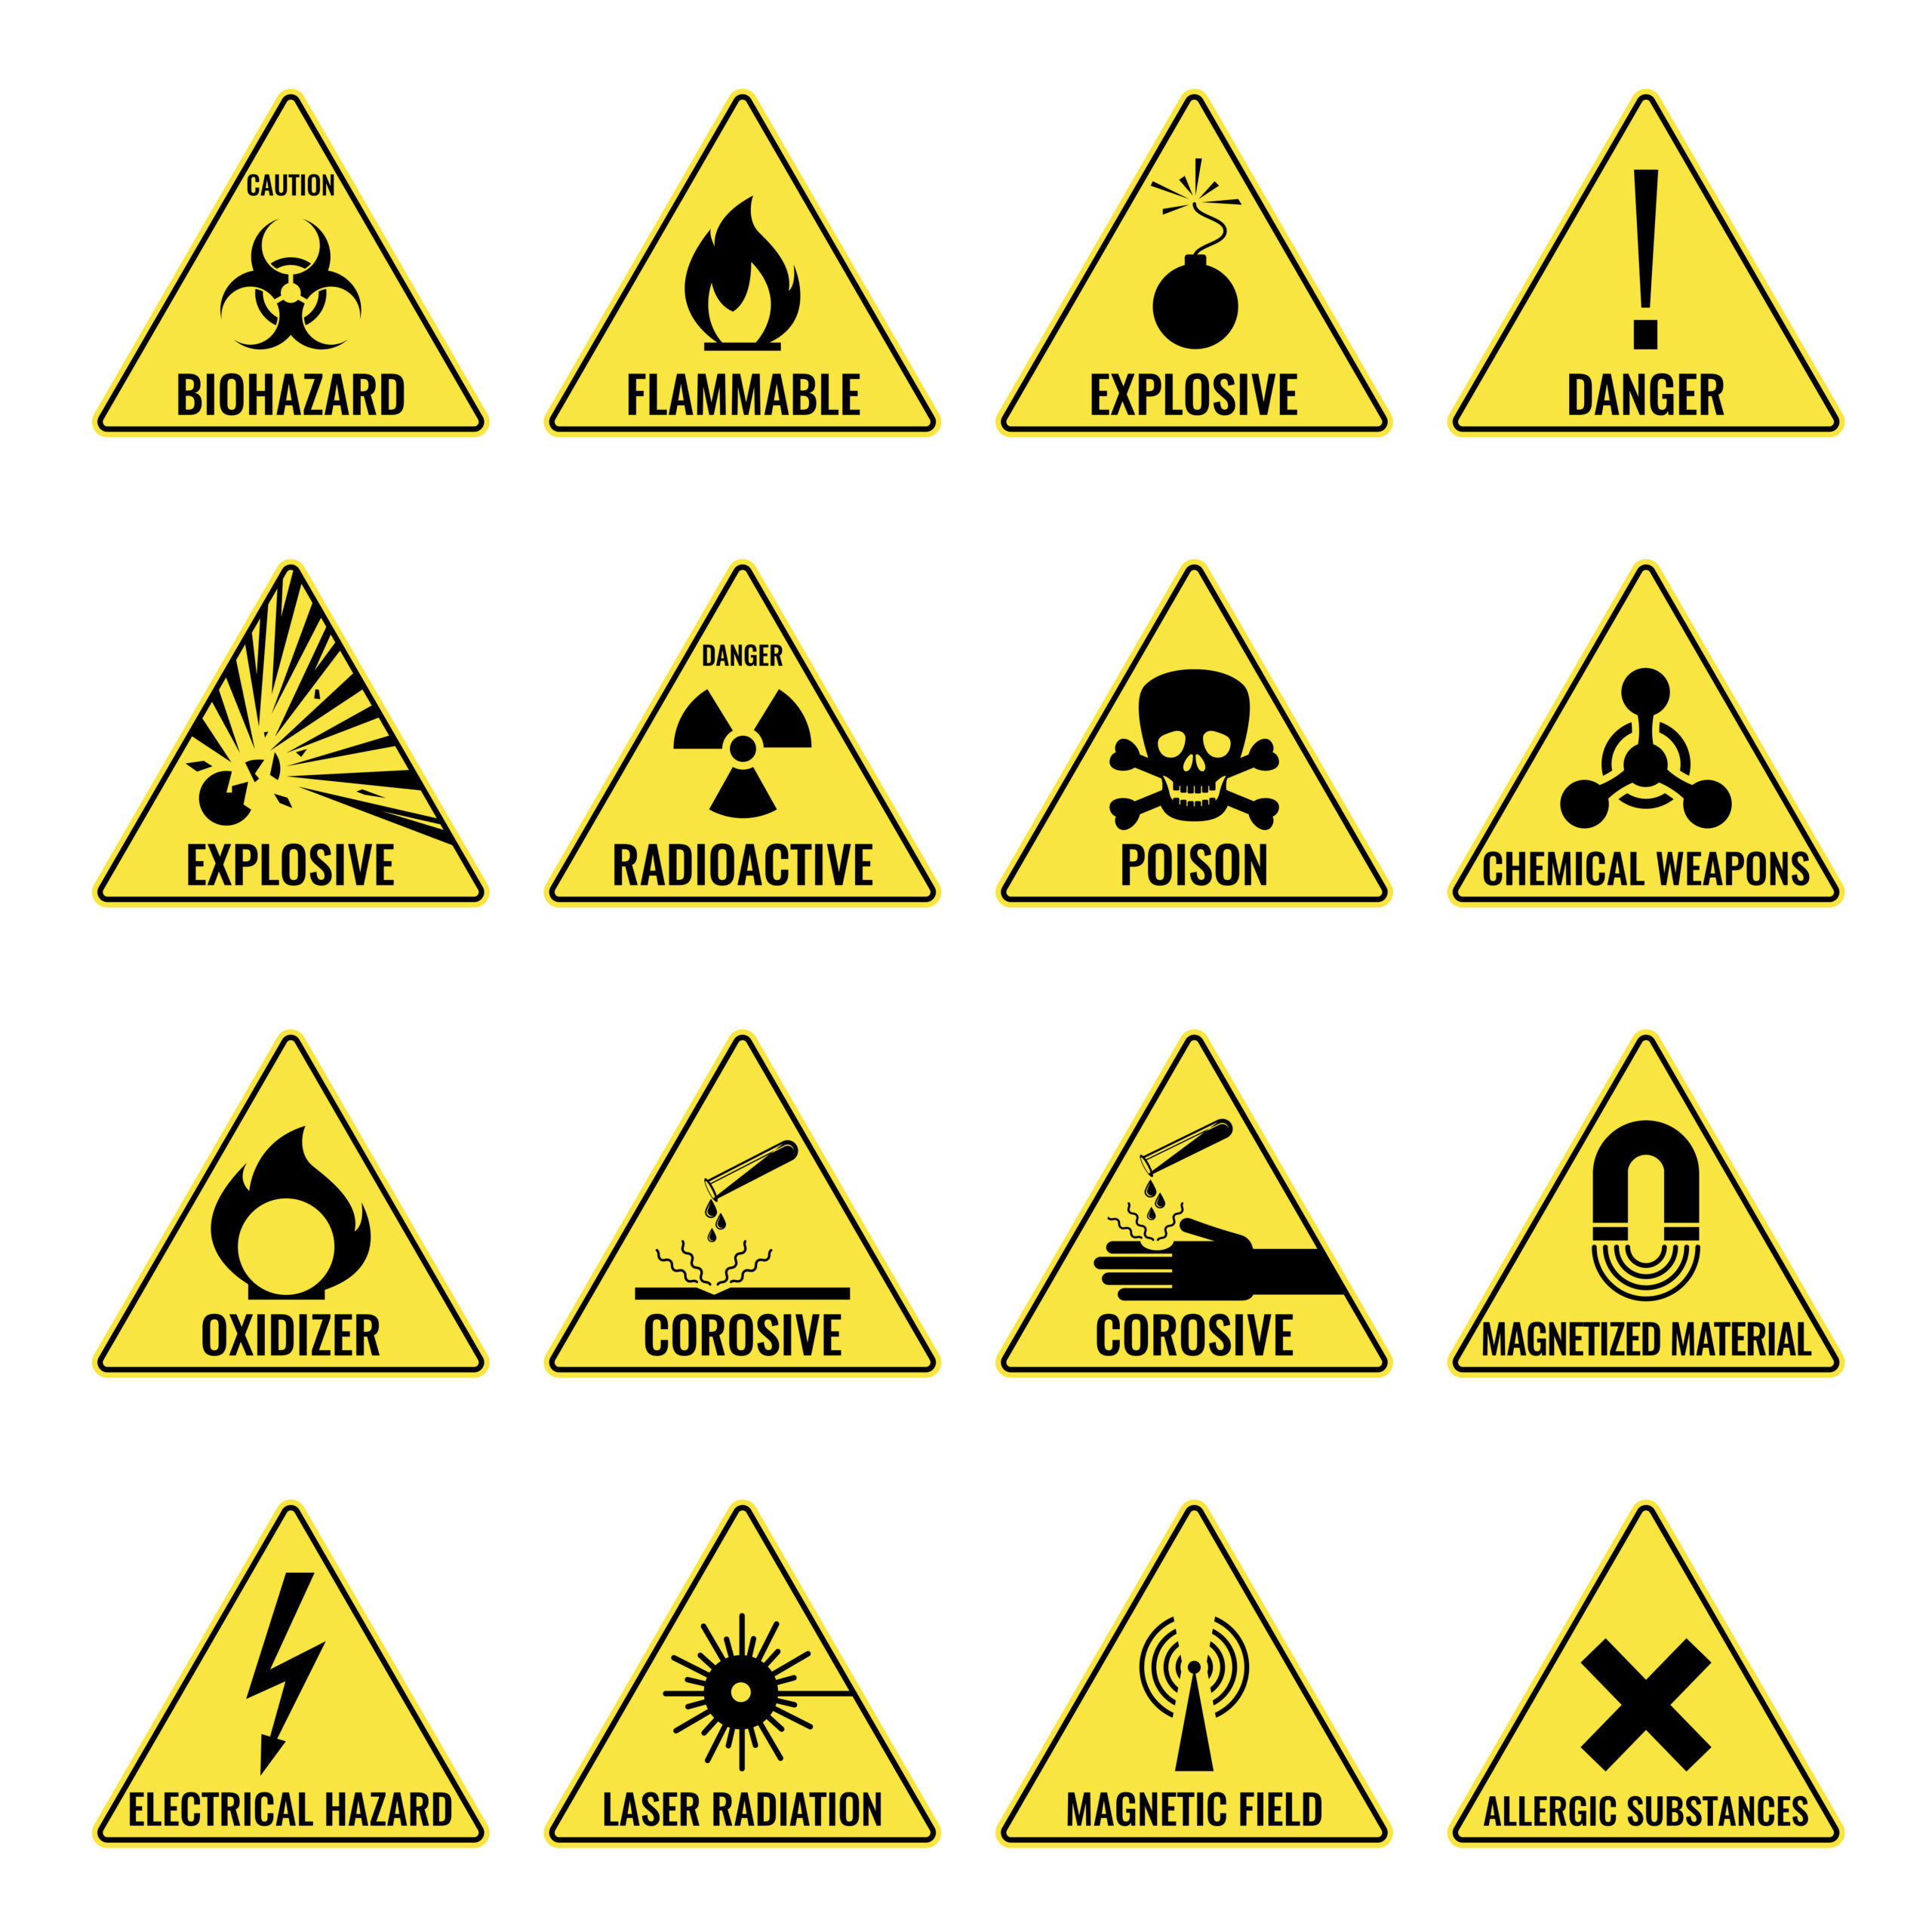 Hazard warning triangular yellow icon set on white. Vector colorful illustration of caution signs showing dangerous places or things